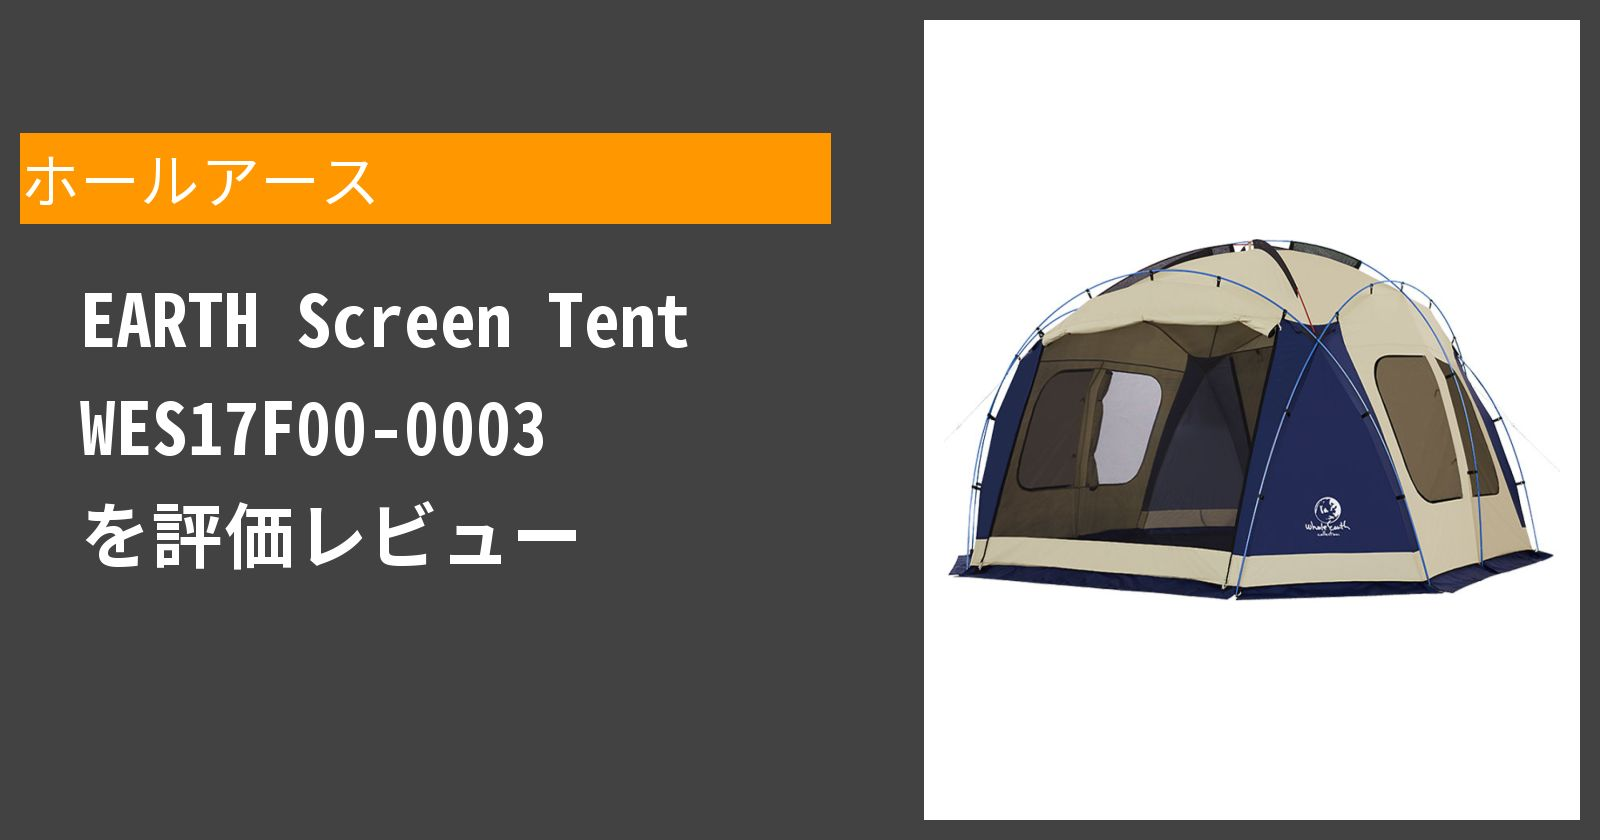 EARTH Screen Tent WES17F00-0003を徹底評価